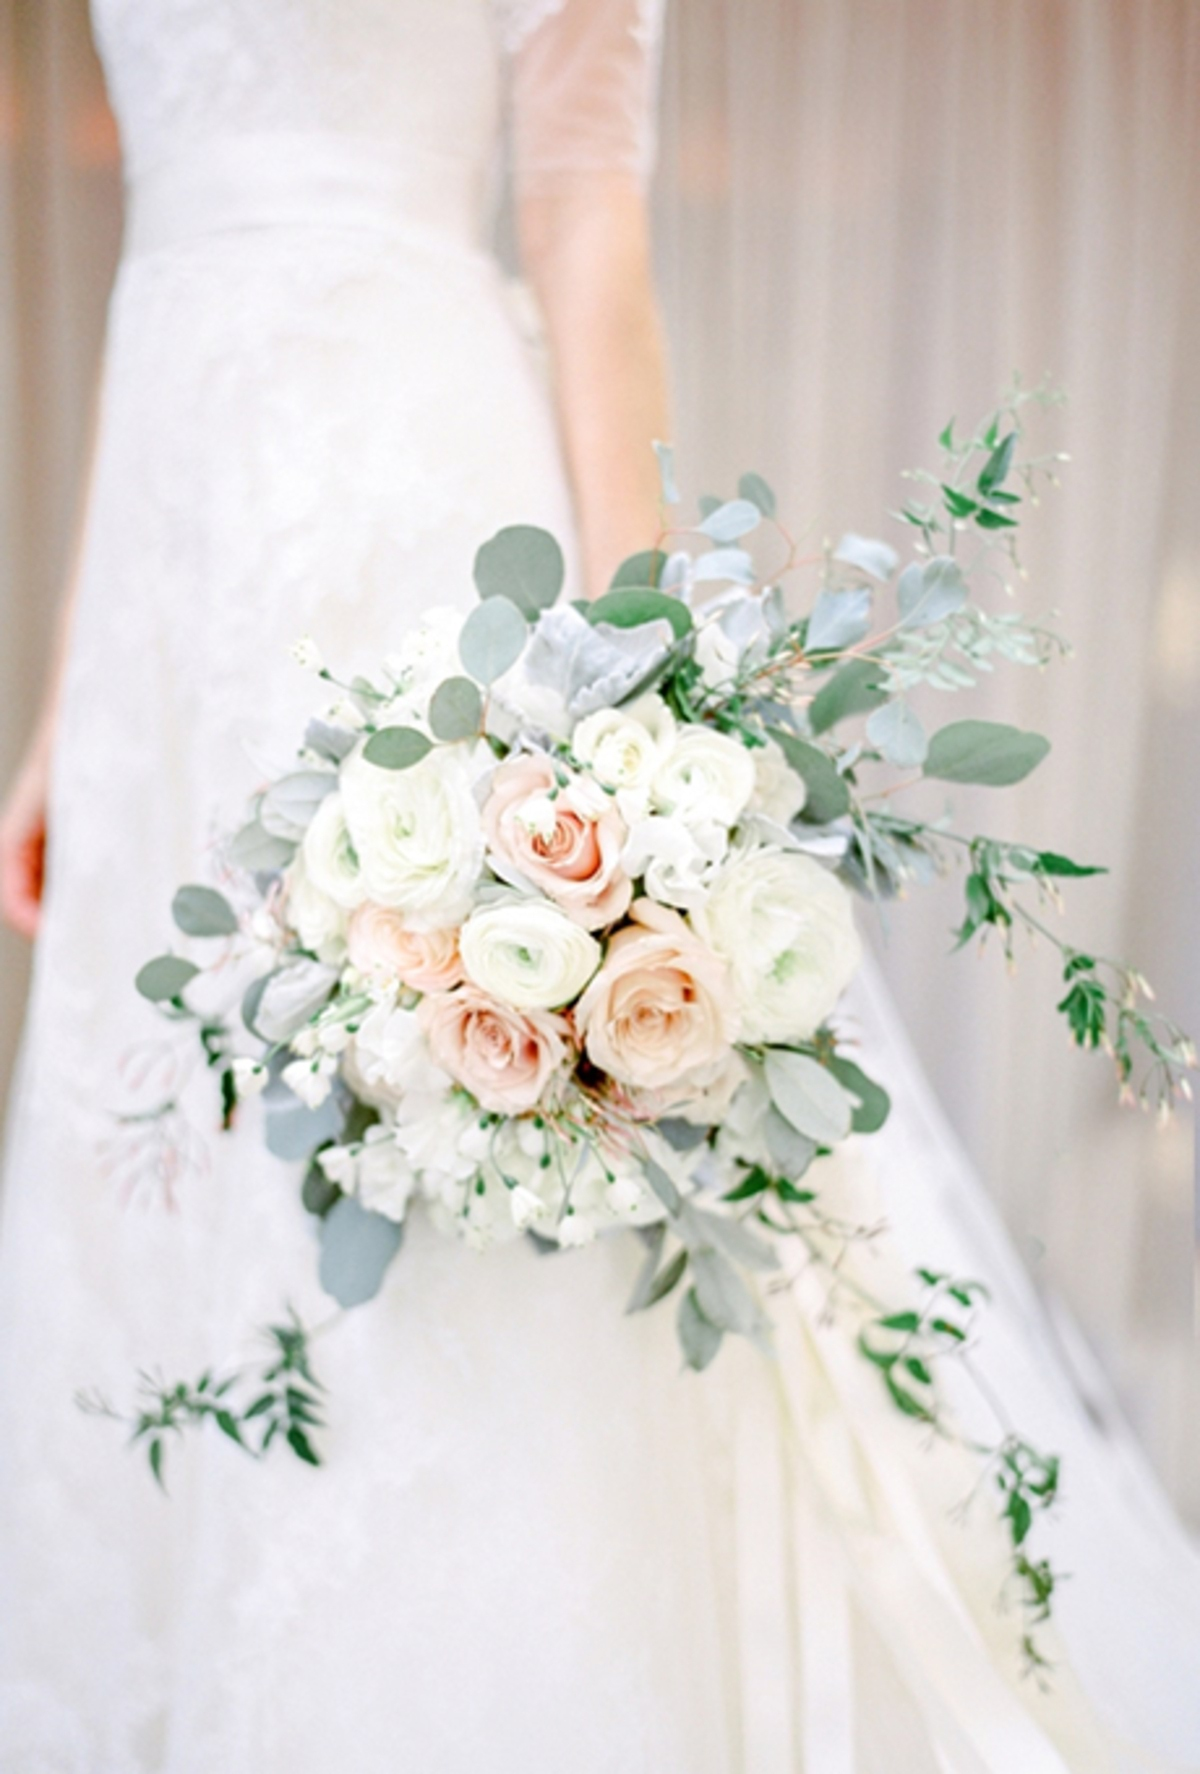 Herb-Wedding-Bouquets-Coco-Tran-Photography